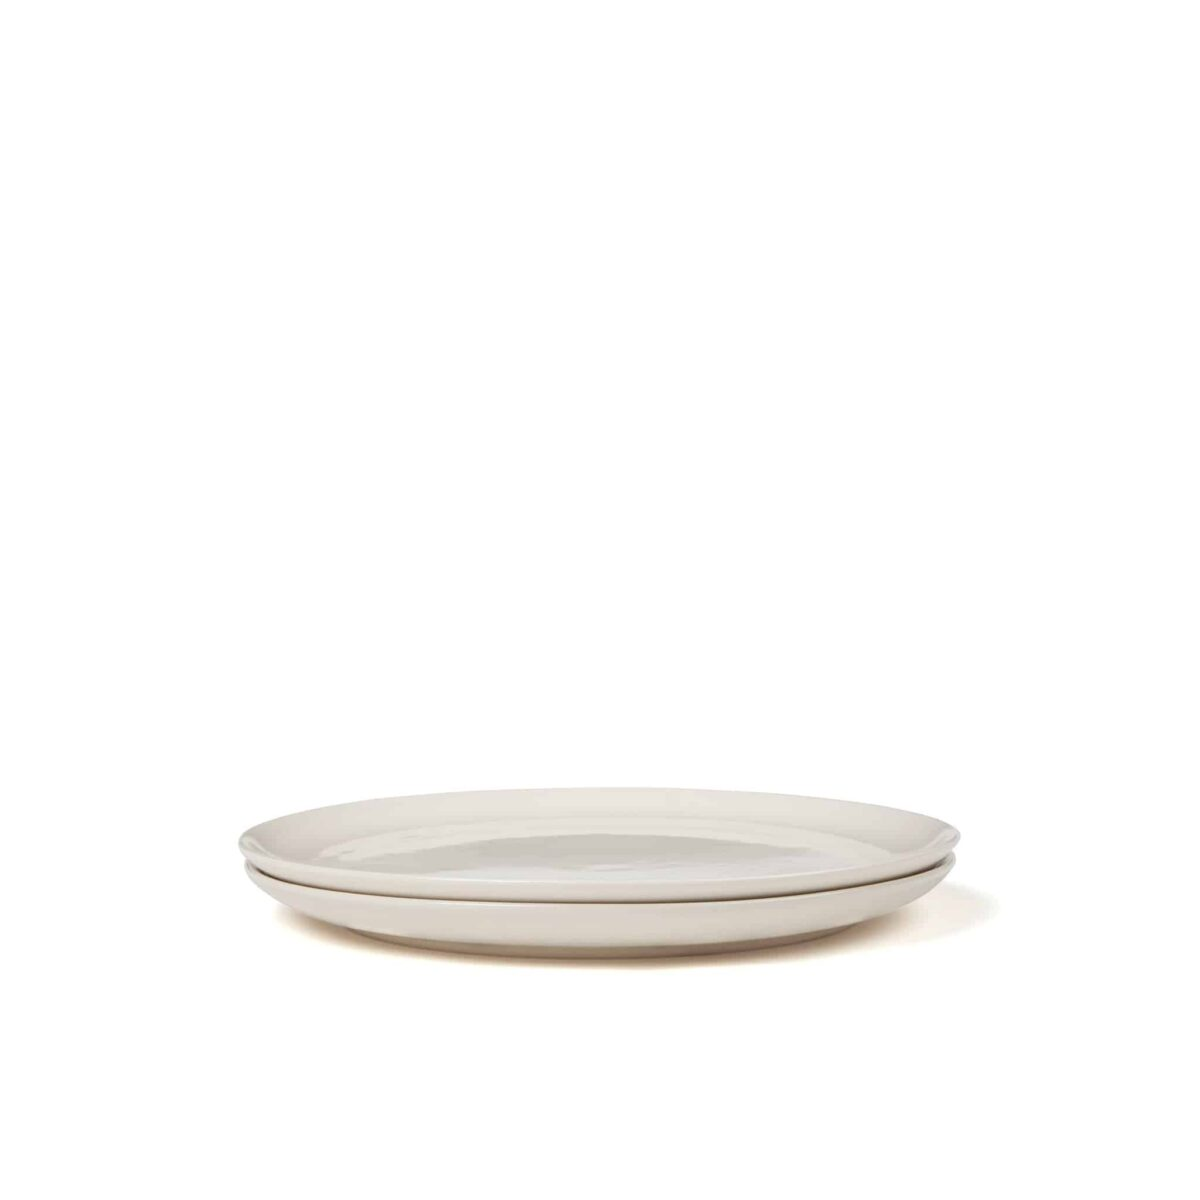 Another-country-pottery-plate-dinner-natural-004